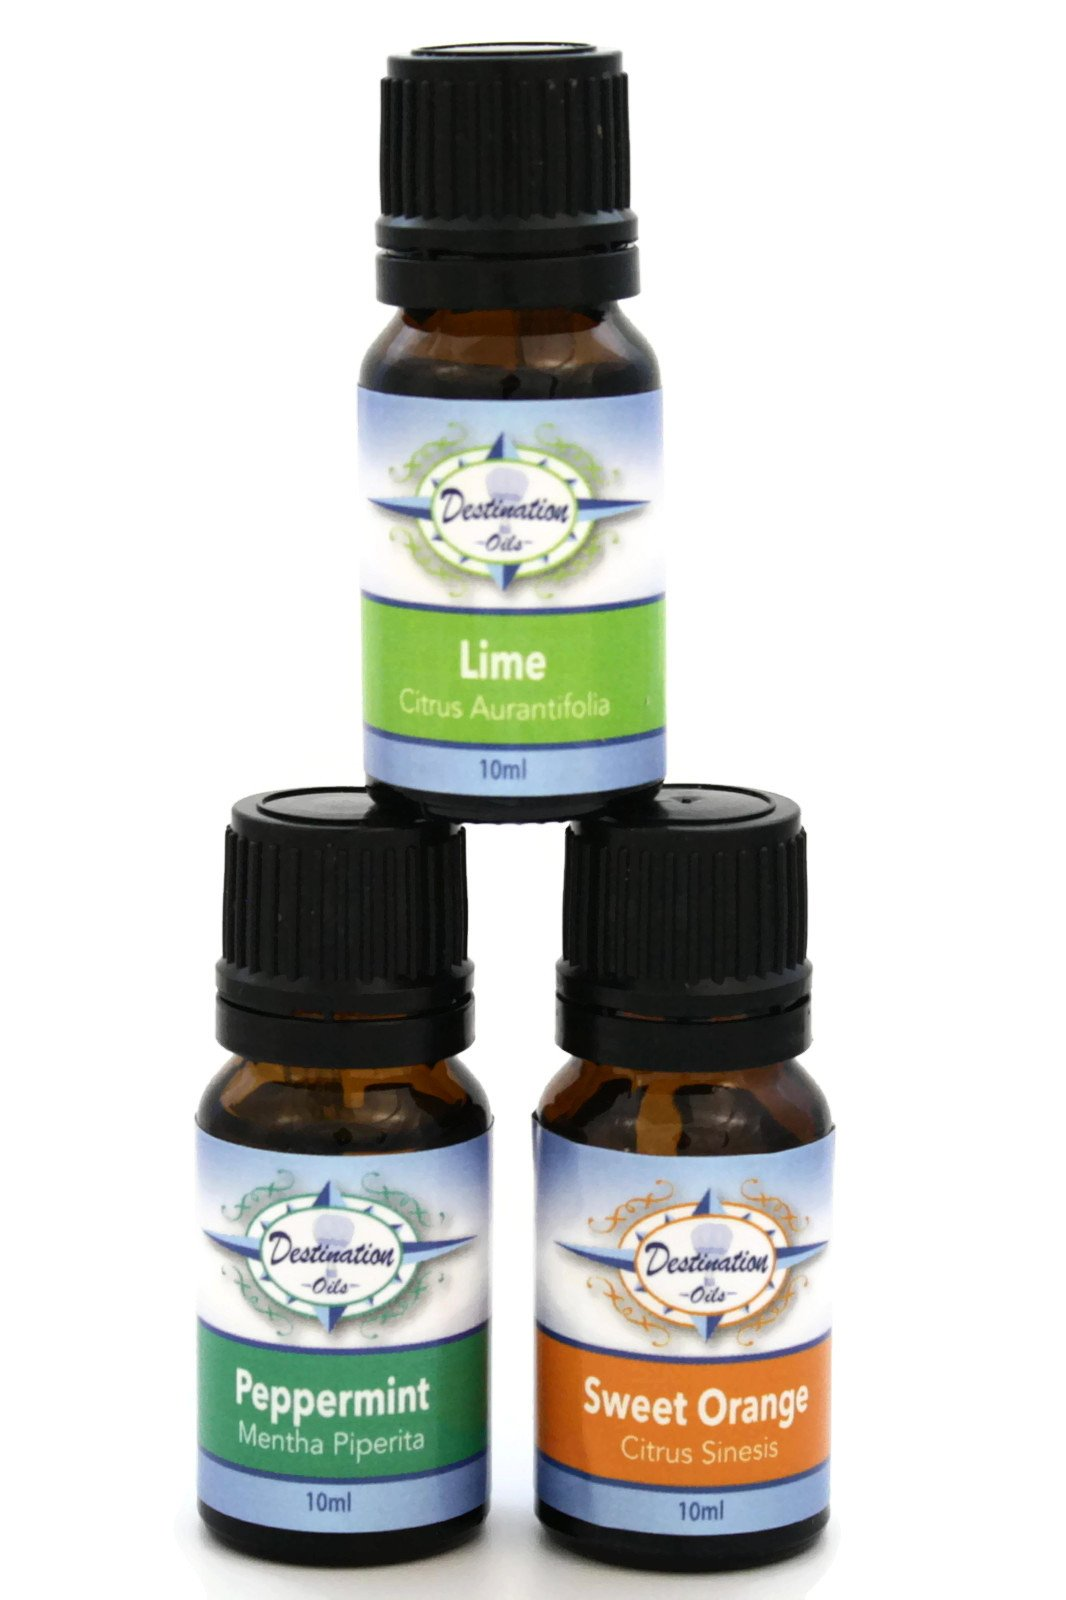 Energy Boost Invigorating Essential Oil Gift Set- Lime, Peppermint, Sweet Orange - Gift Sets - Destination Oils